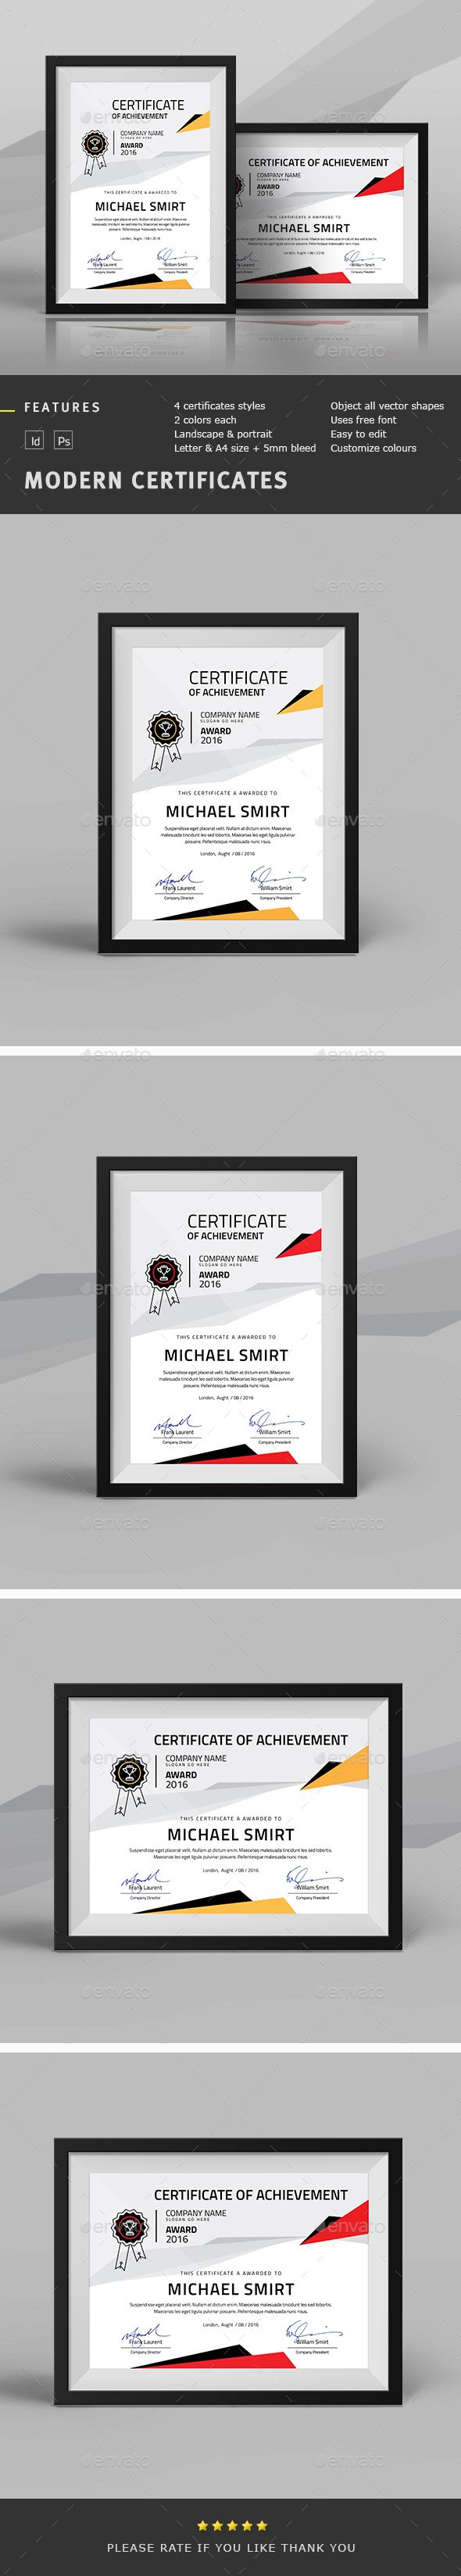 Modern Multipurpose Certificates Template PSD, InDesign INDD. Download here: http://graphicriver.net/item/modern-multipurpose-certificates/13533877?ref=ksioks